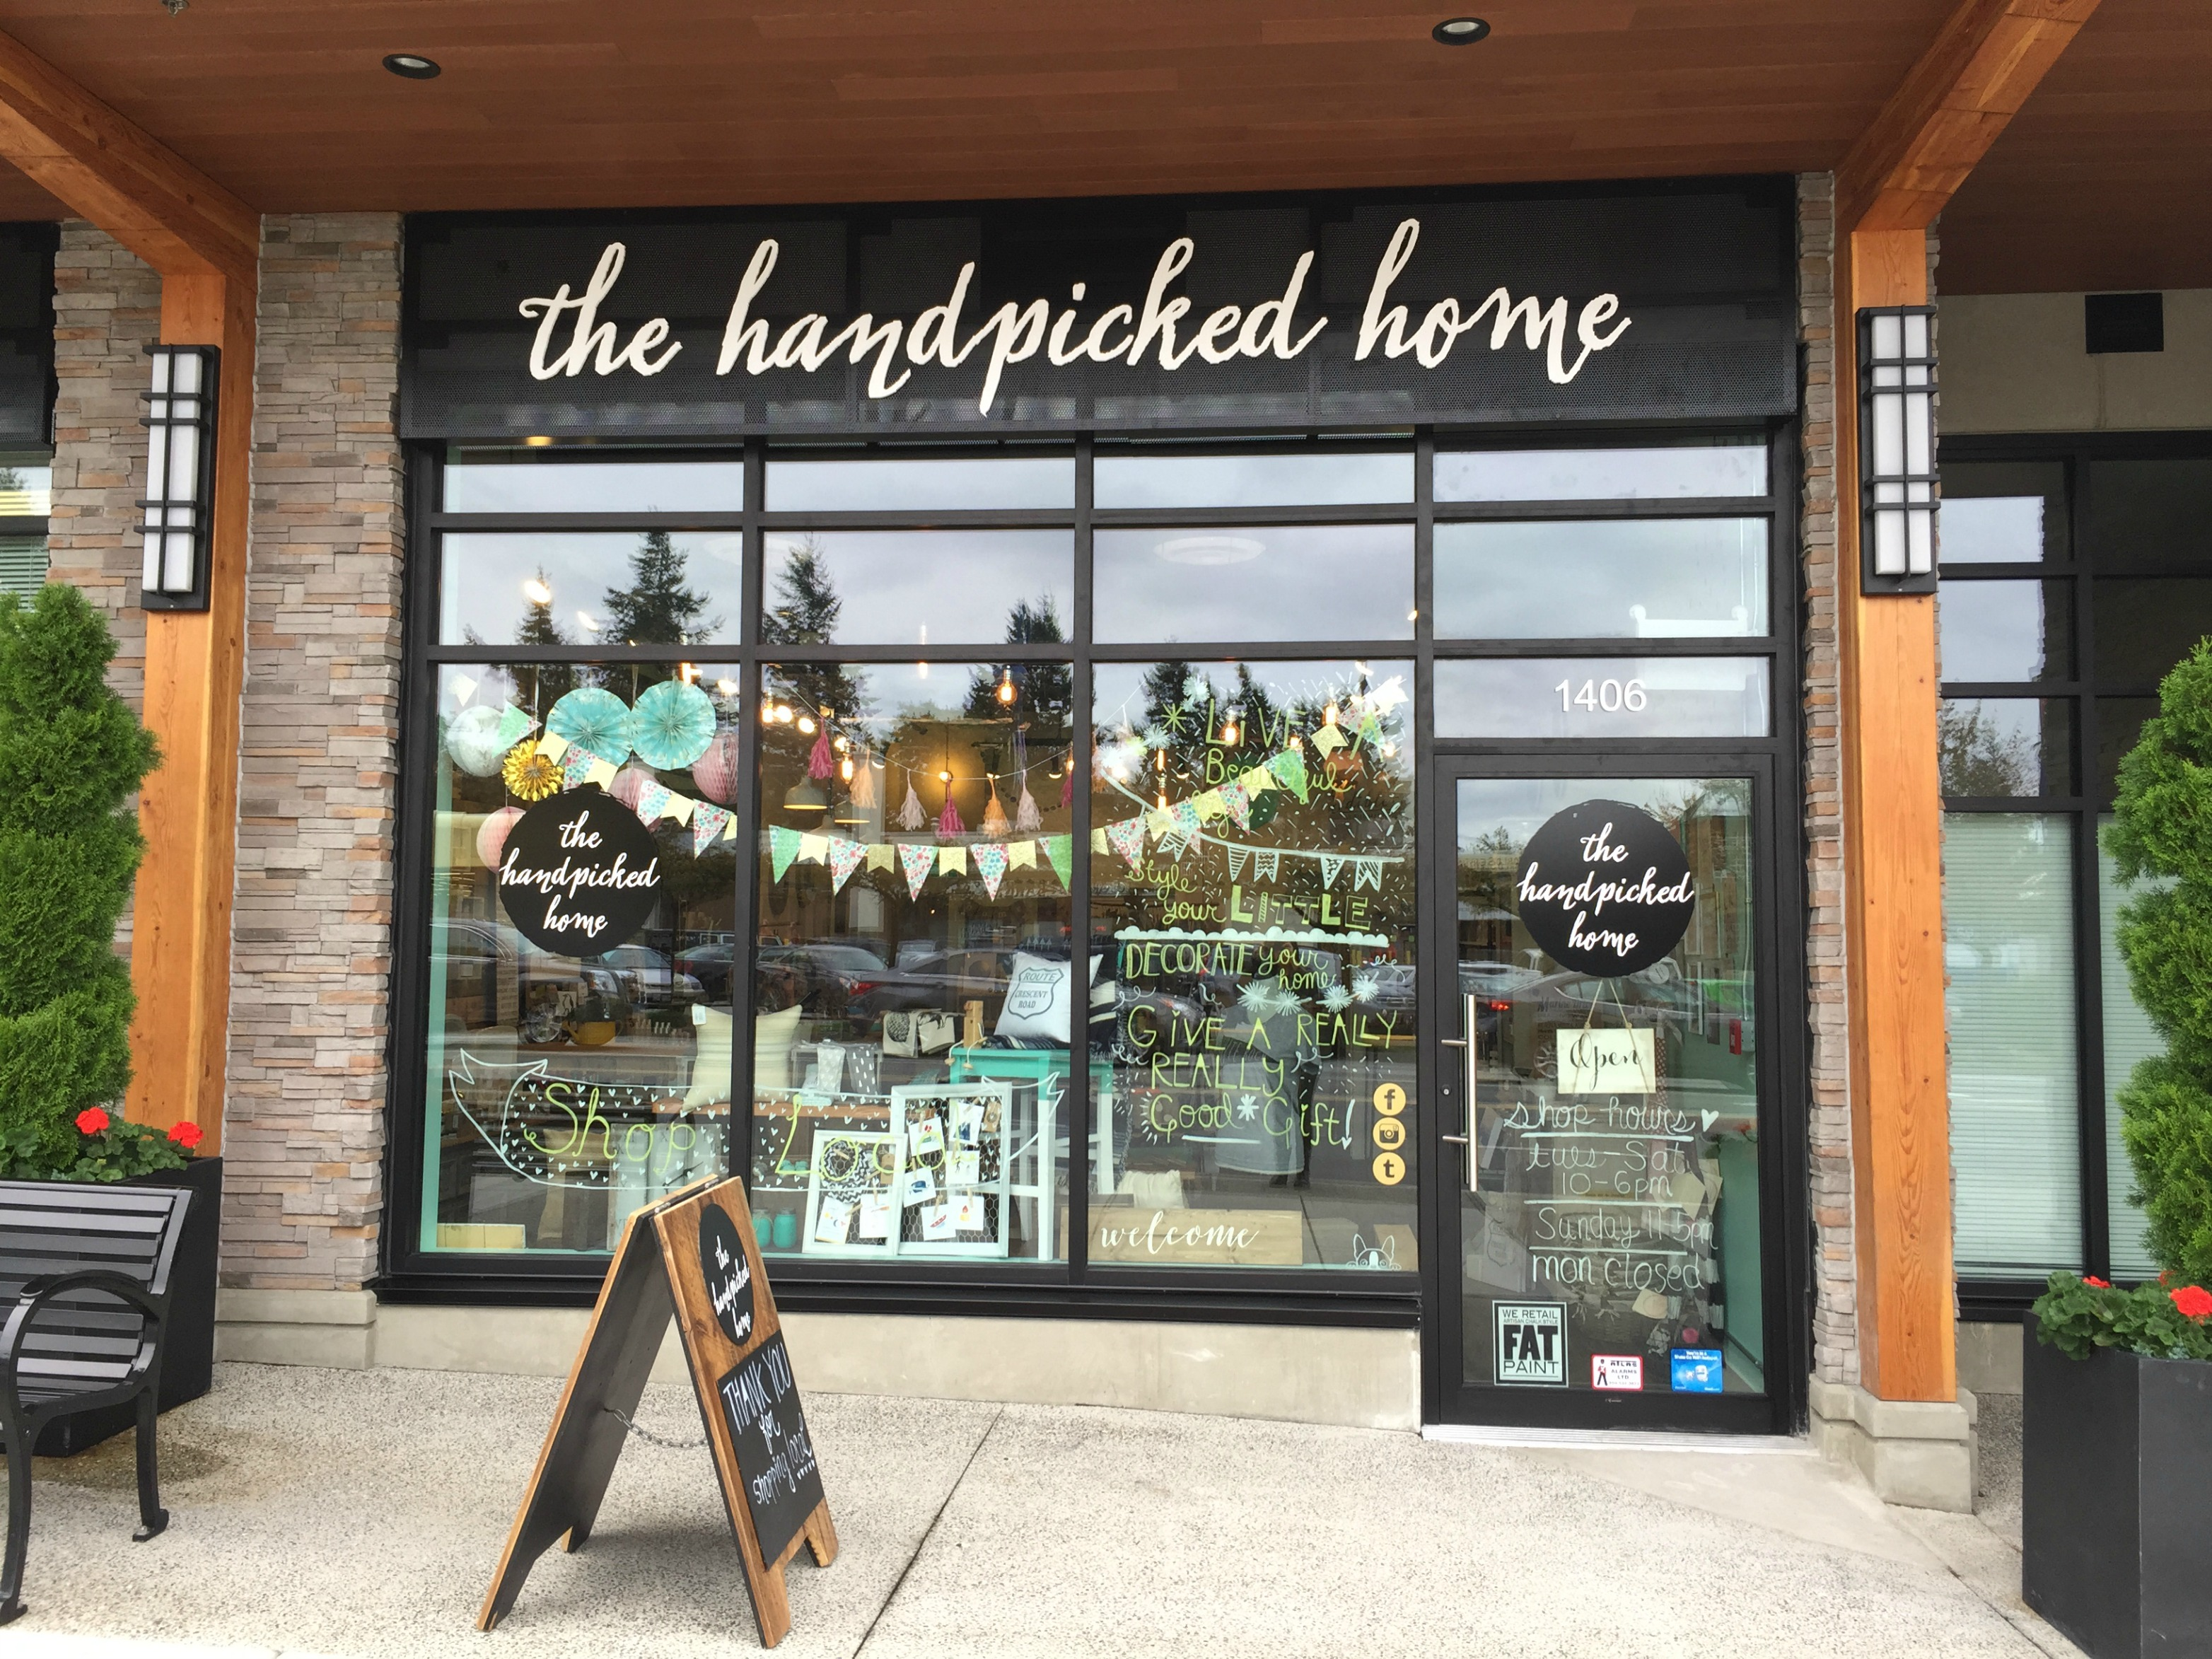 the handpicked home turns one ledingham mcallister